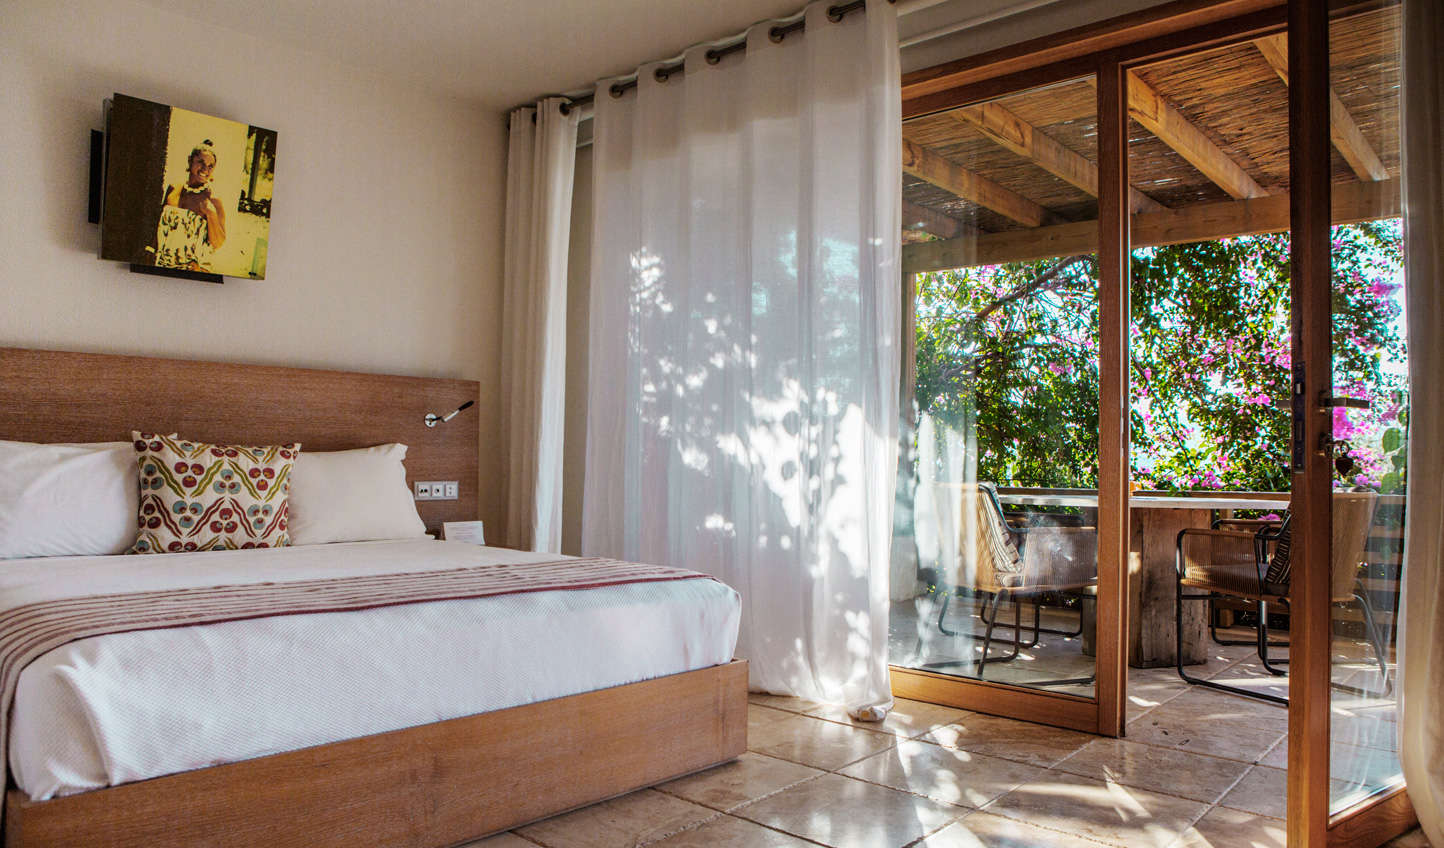 Light and bright rooms which leave you feeling rested and rejuvenated